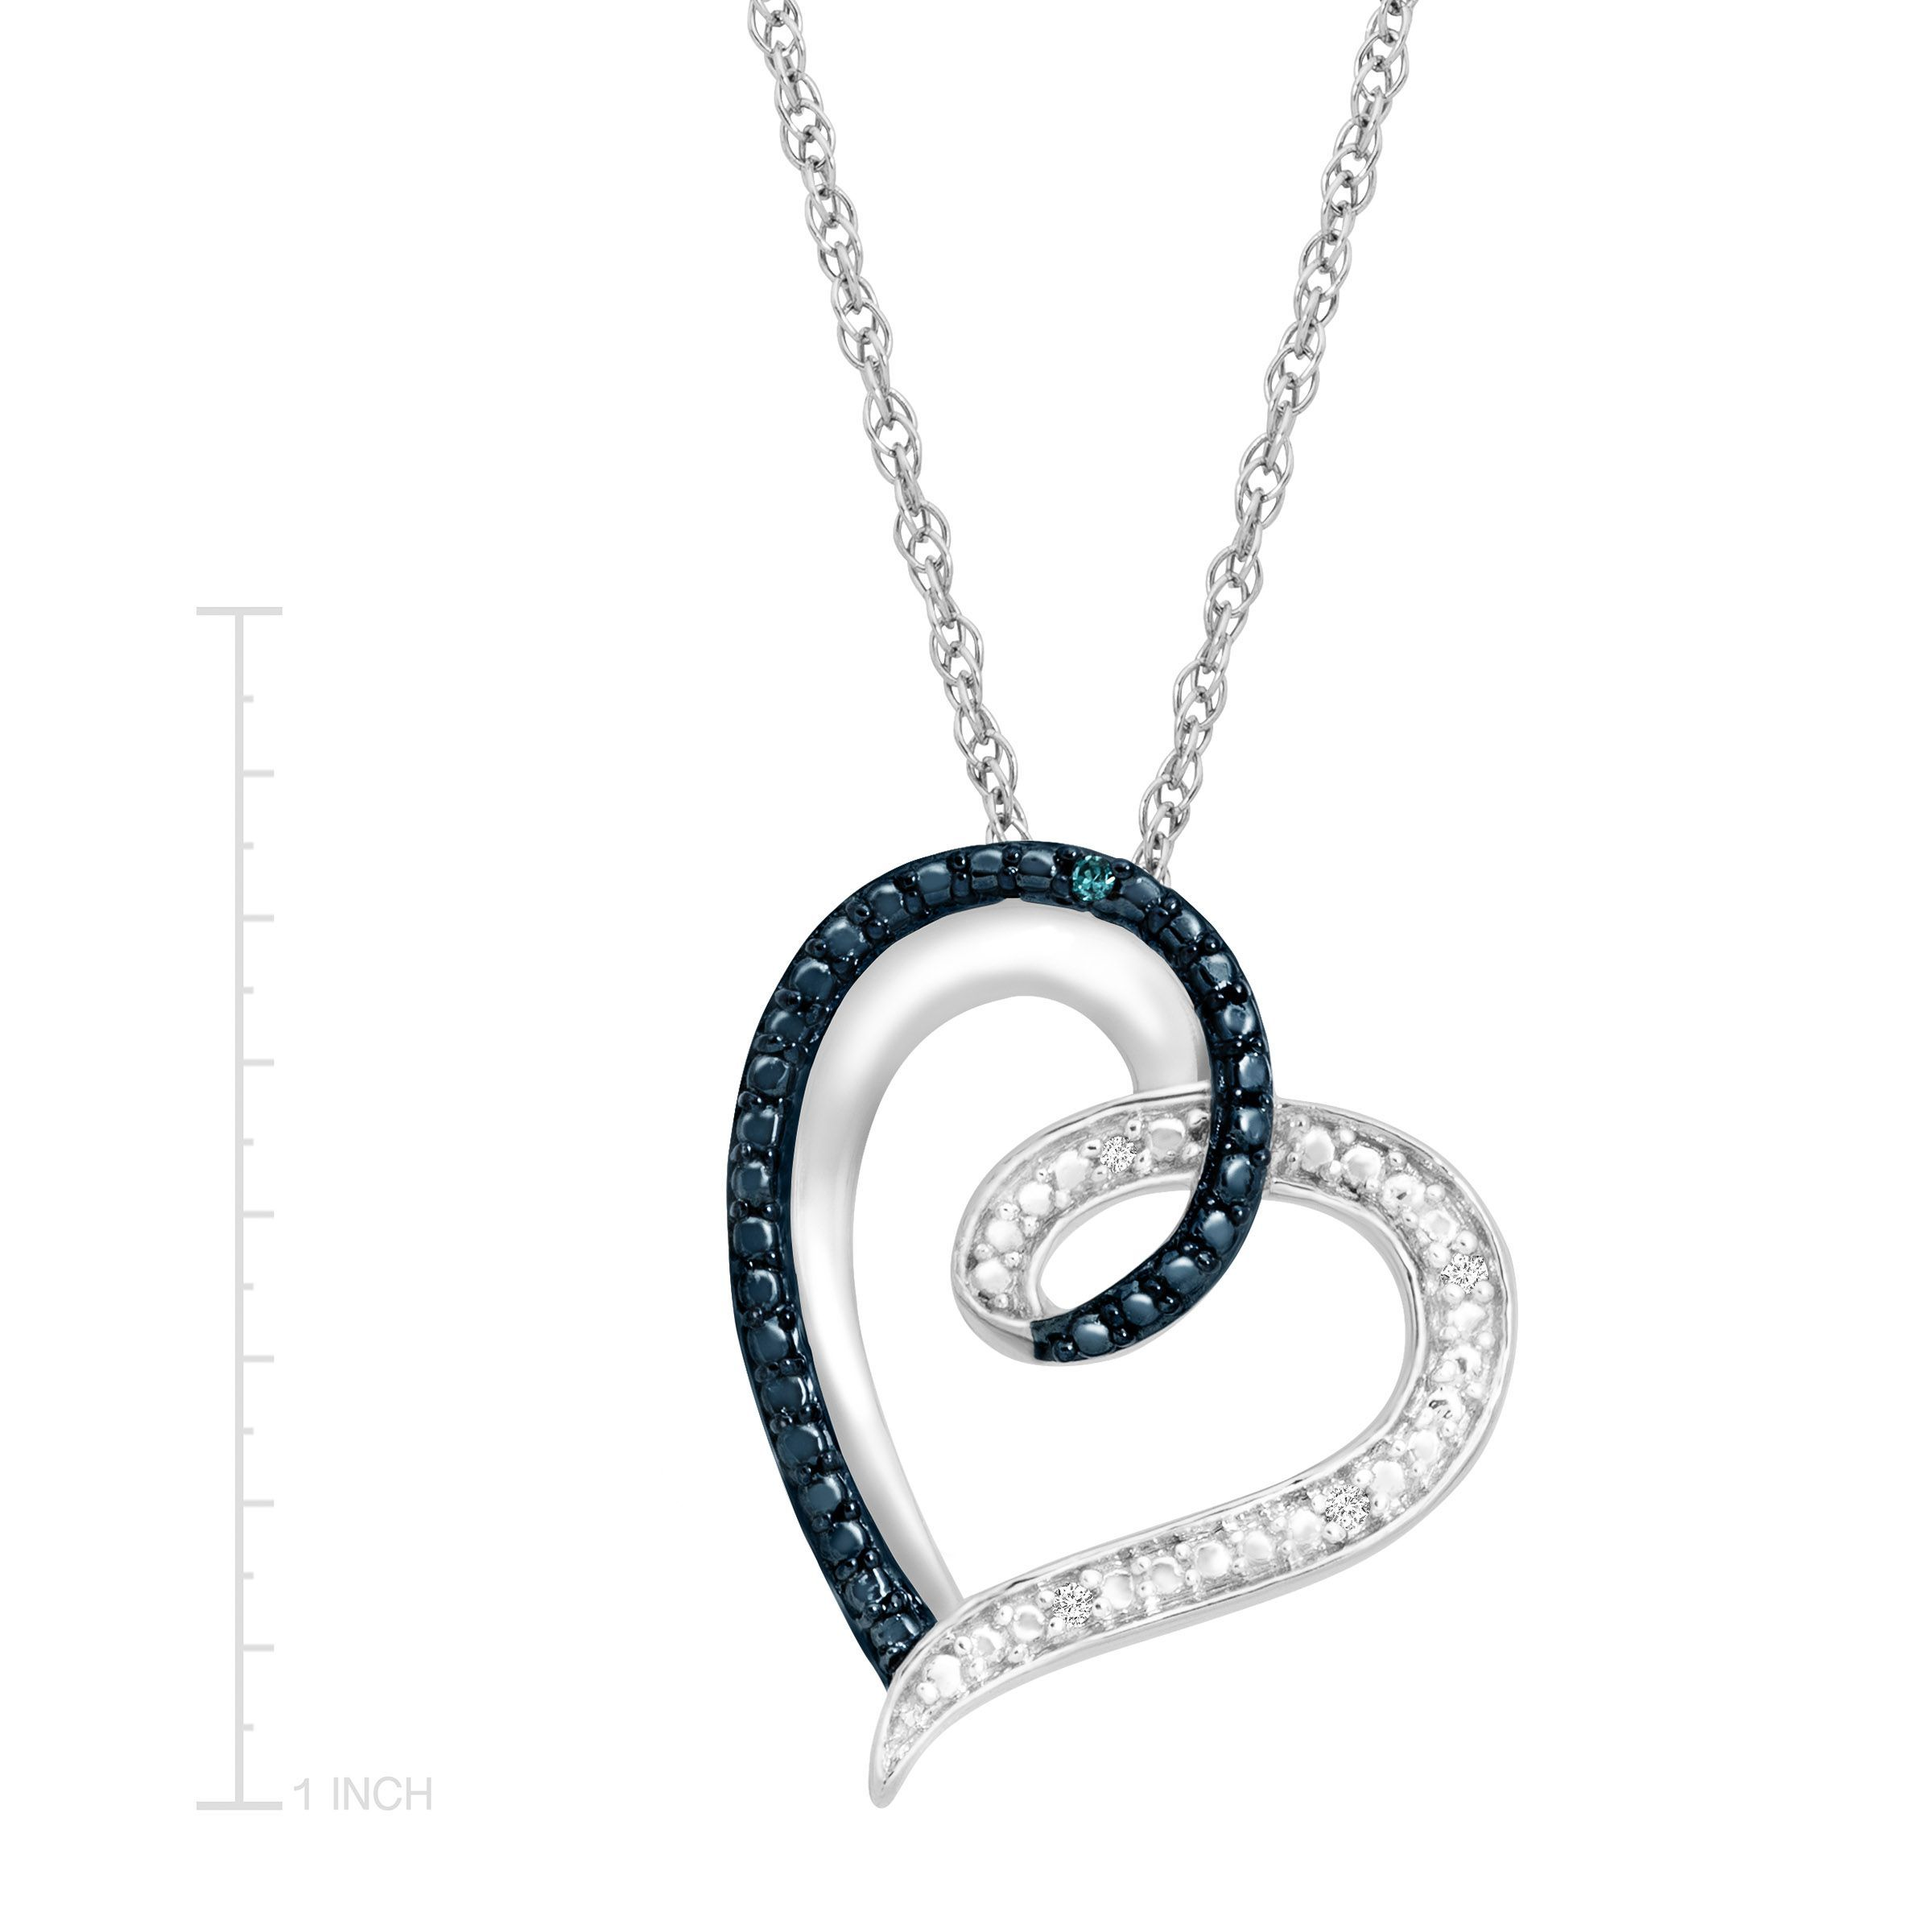 heart pendant necklace with blue and white diamonds in. Black Bedroom Furniture Sets. Home Design Ideas